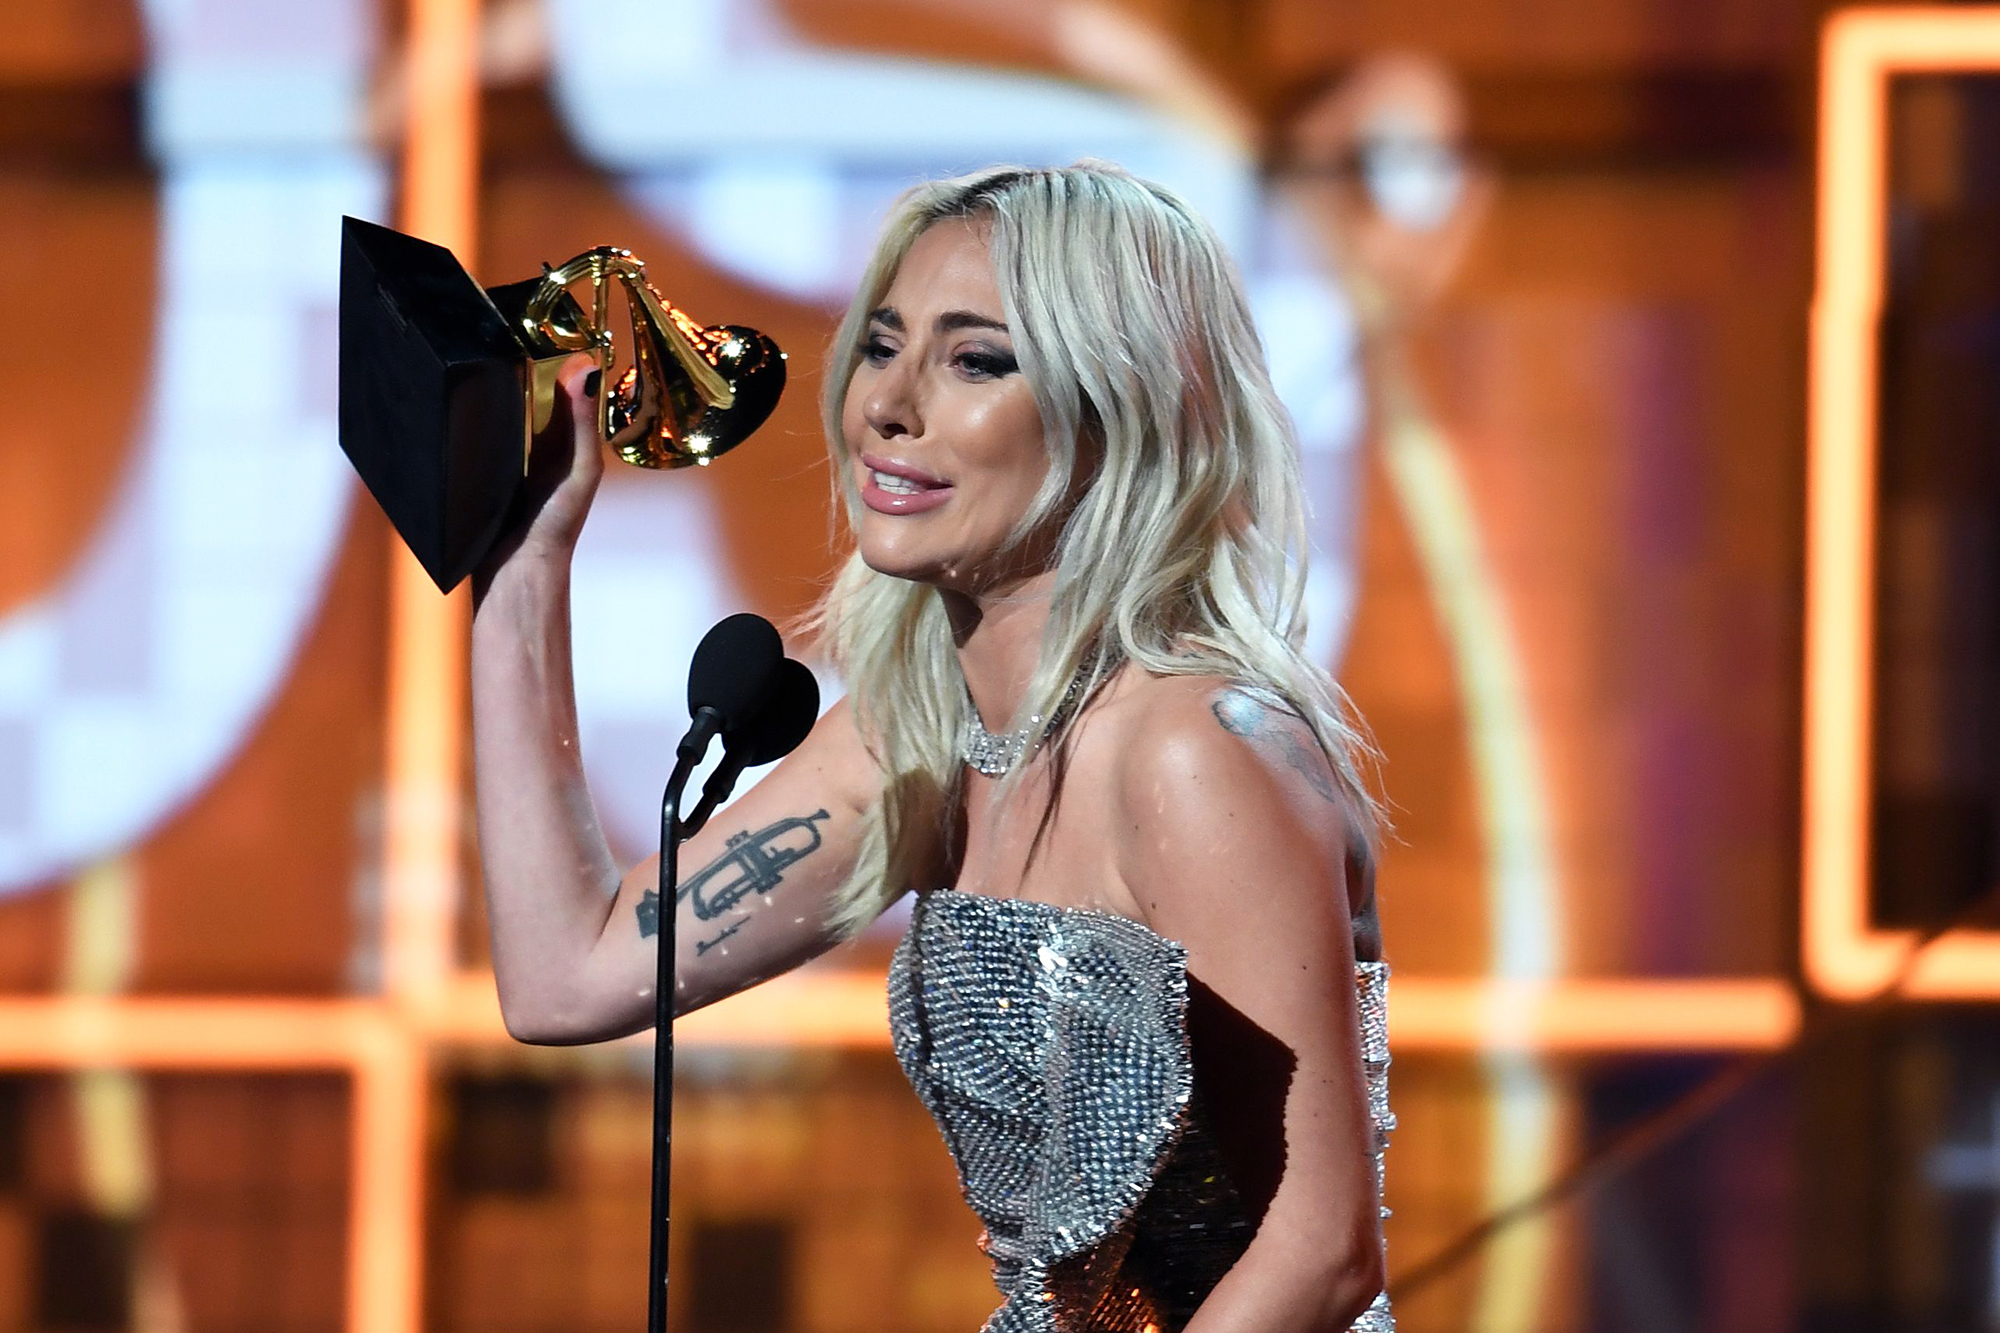 Best Pop Solo 2019 Grammys 2019: Lady Gaga Wins Pop Solo Performance, More